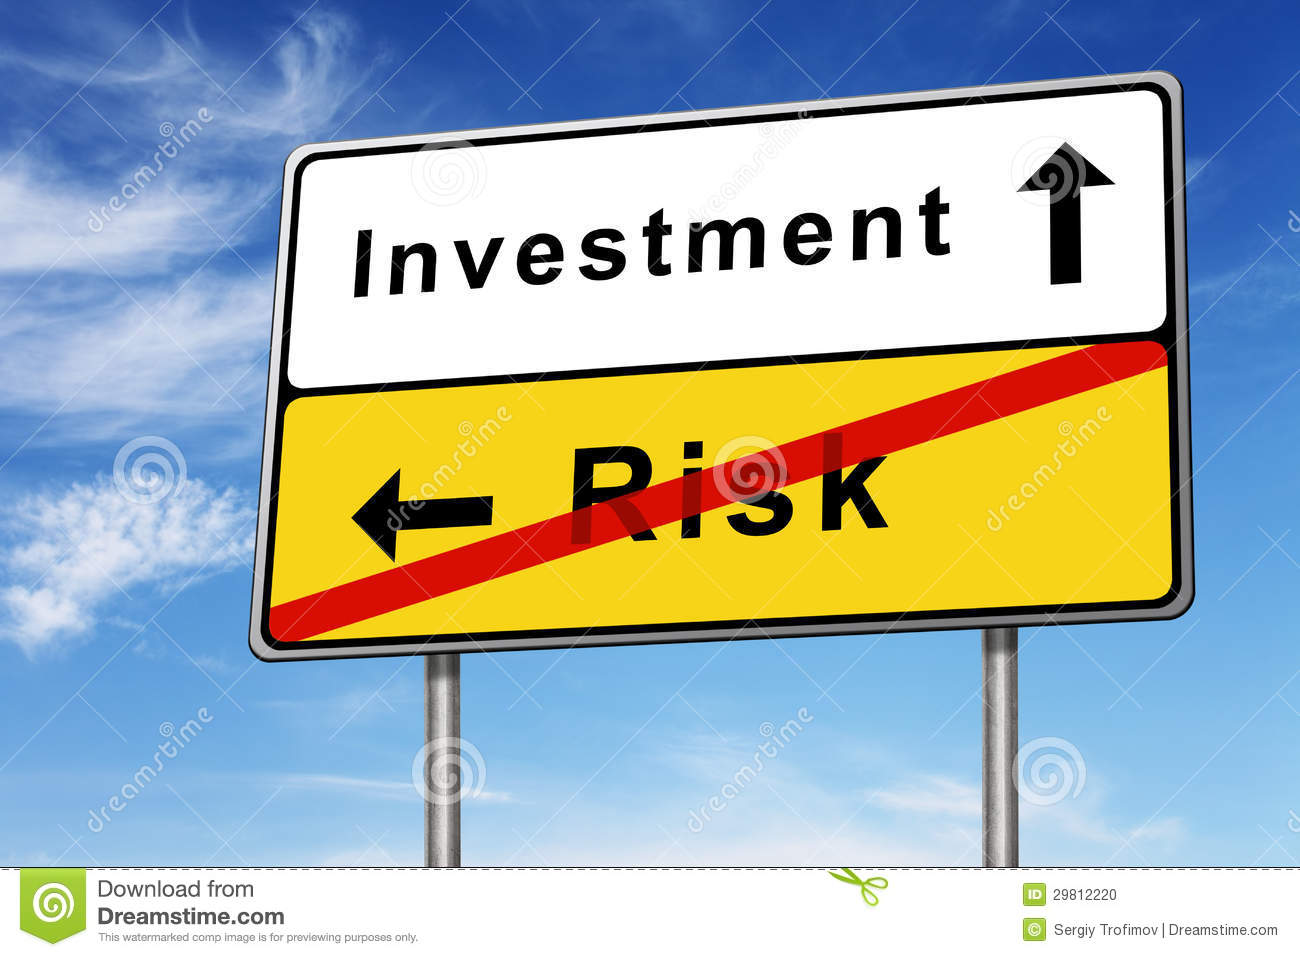 Investment and risk road sign concept